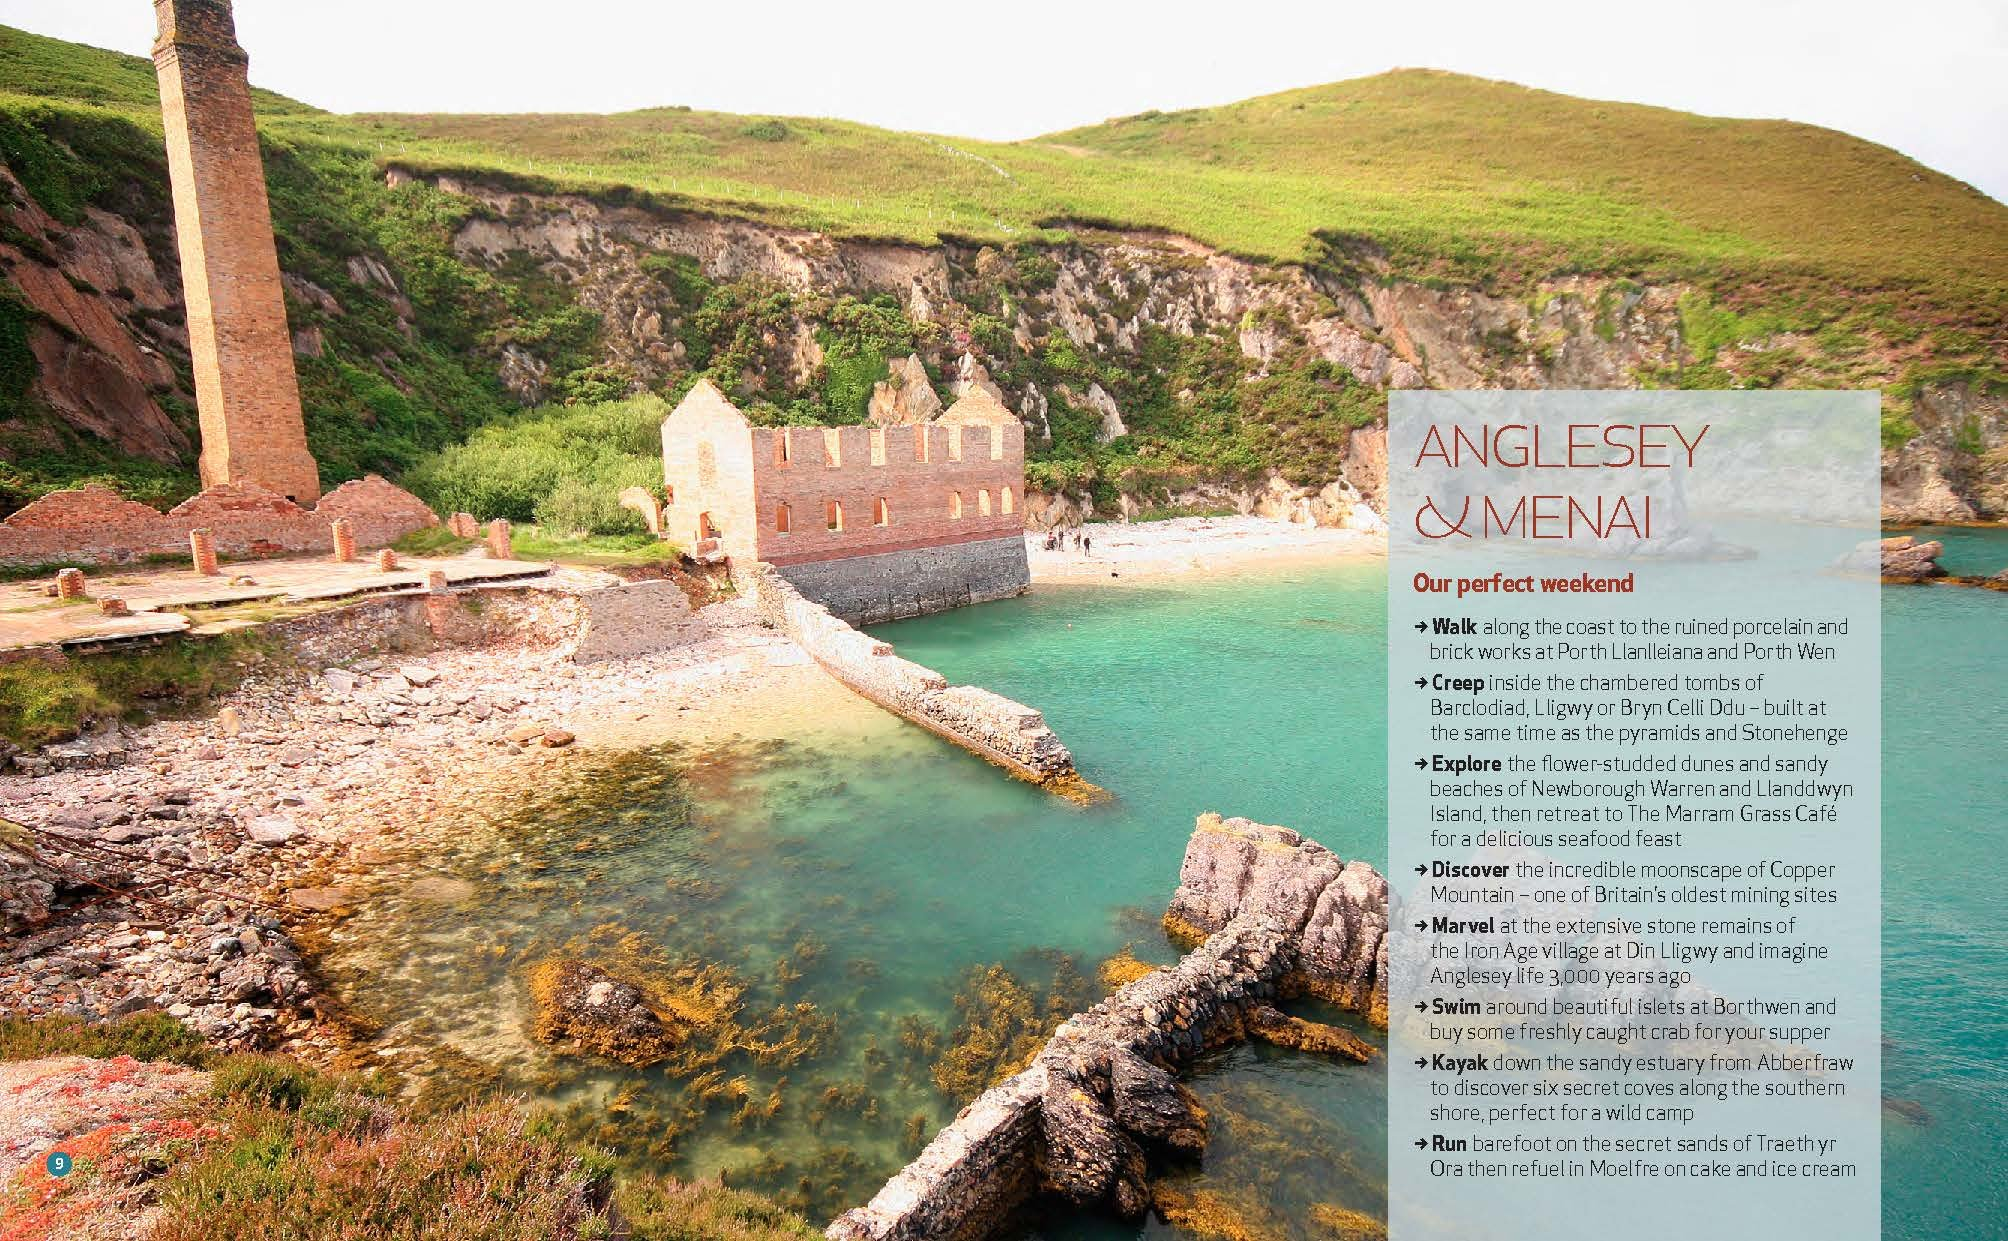 Wild Guide Wales and the Marches (Wild Guides) 5